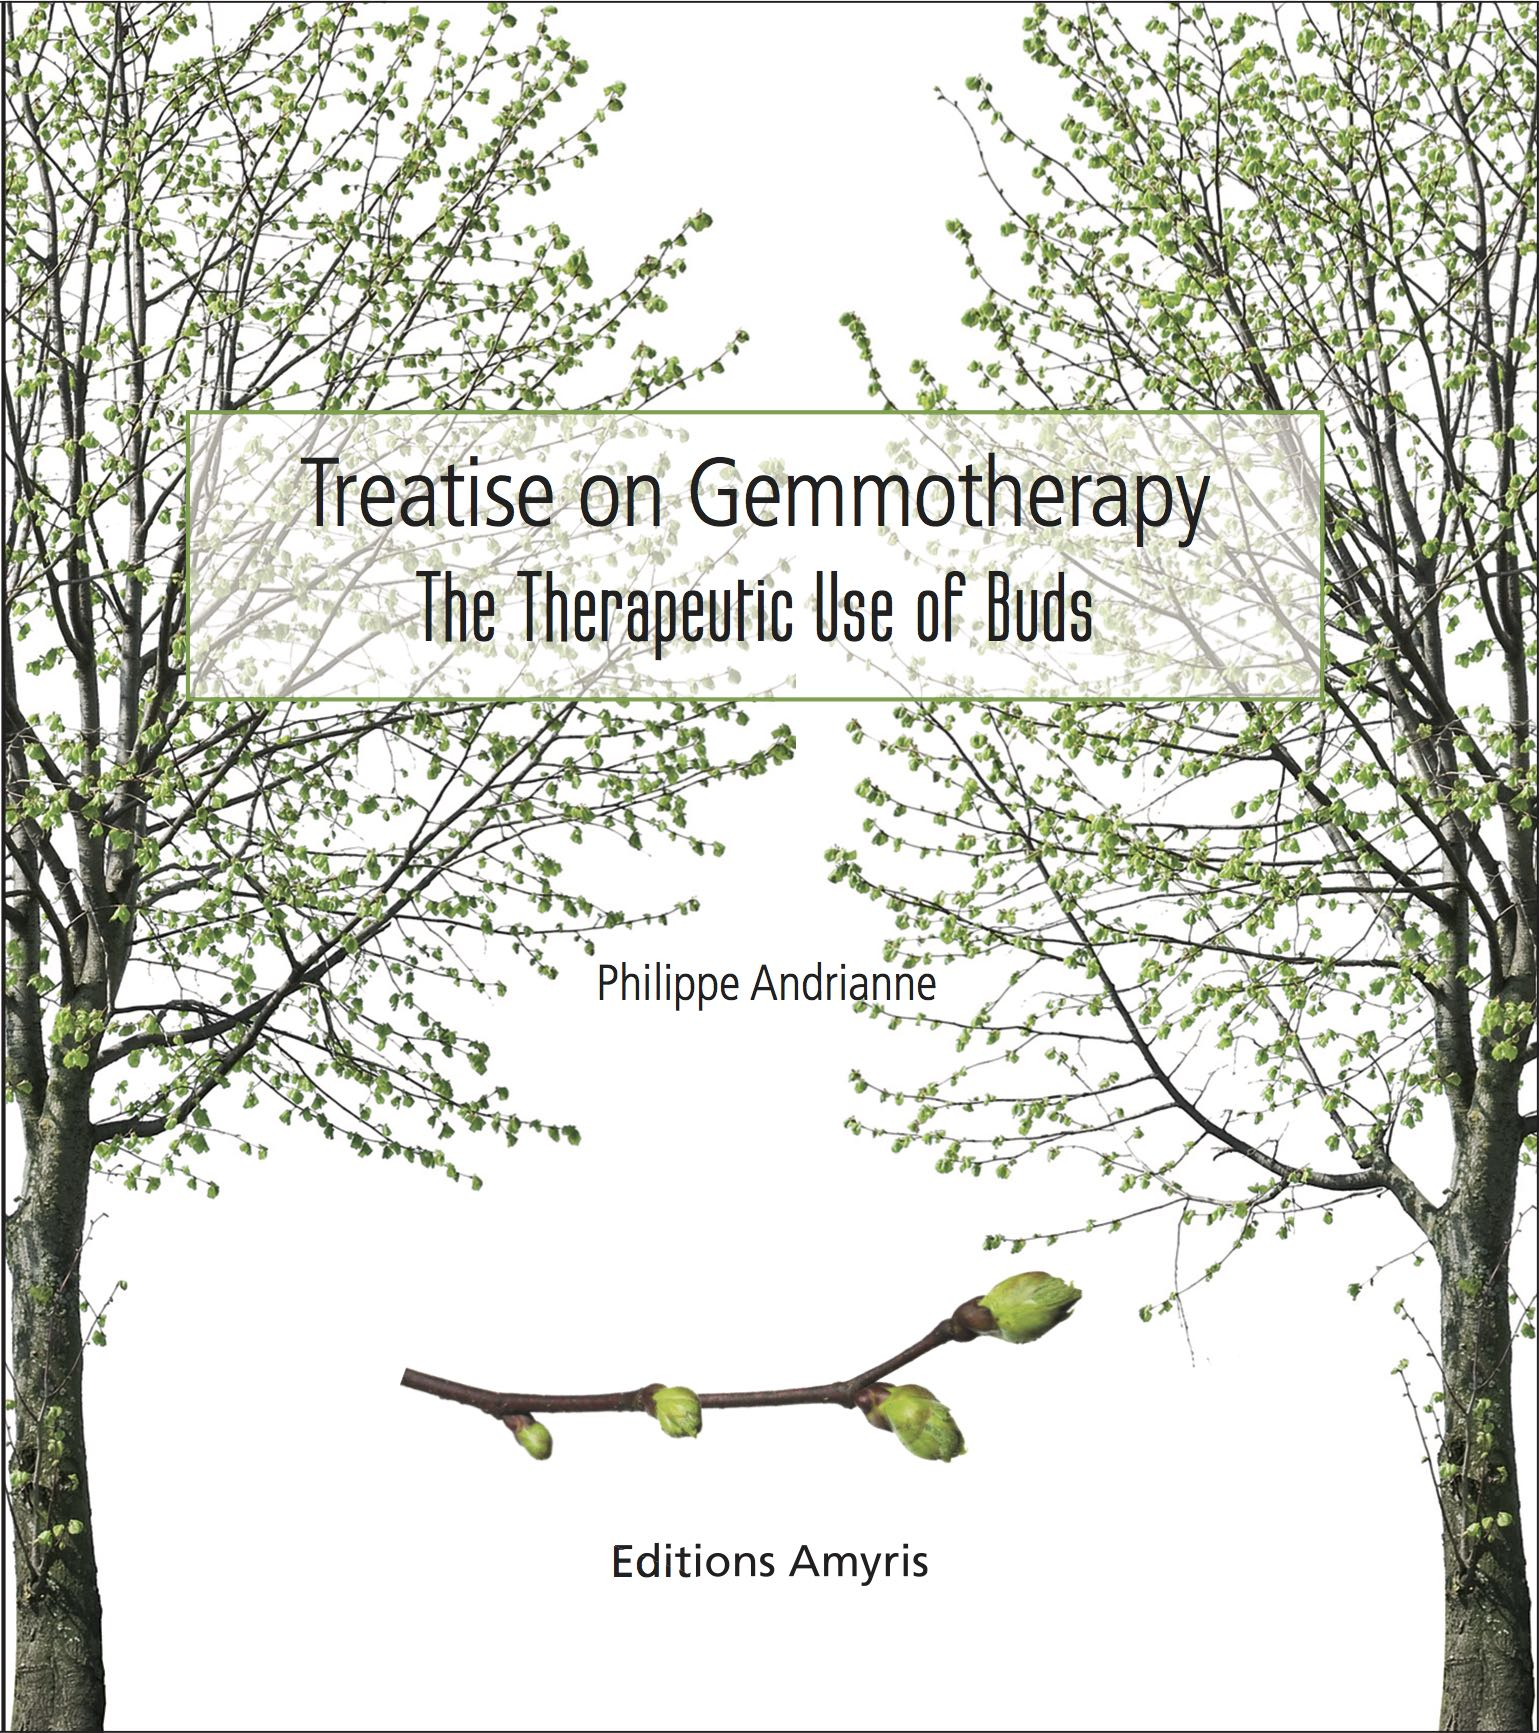 Treatise on Gemmotherapy